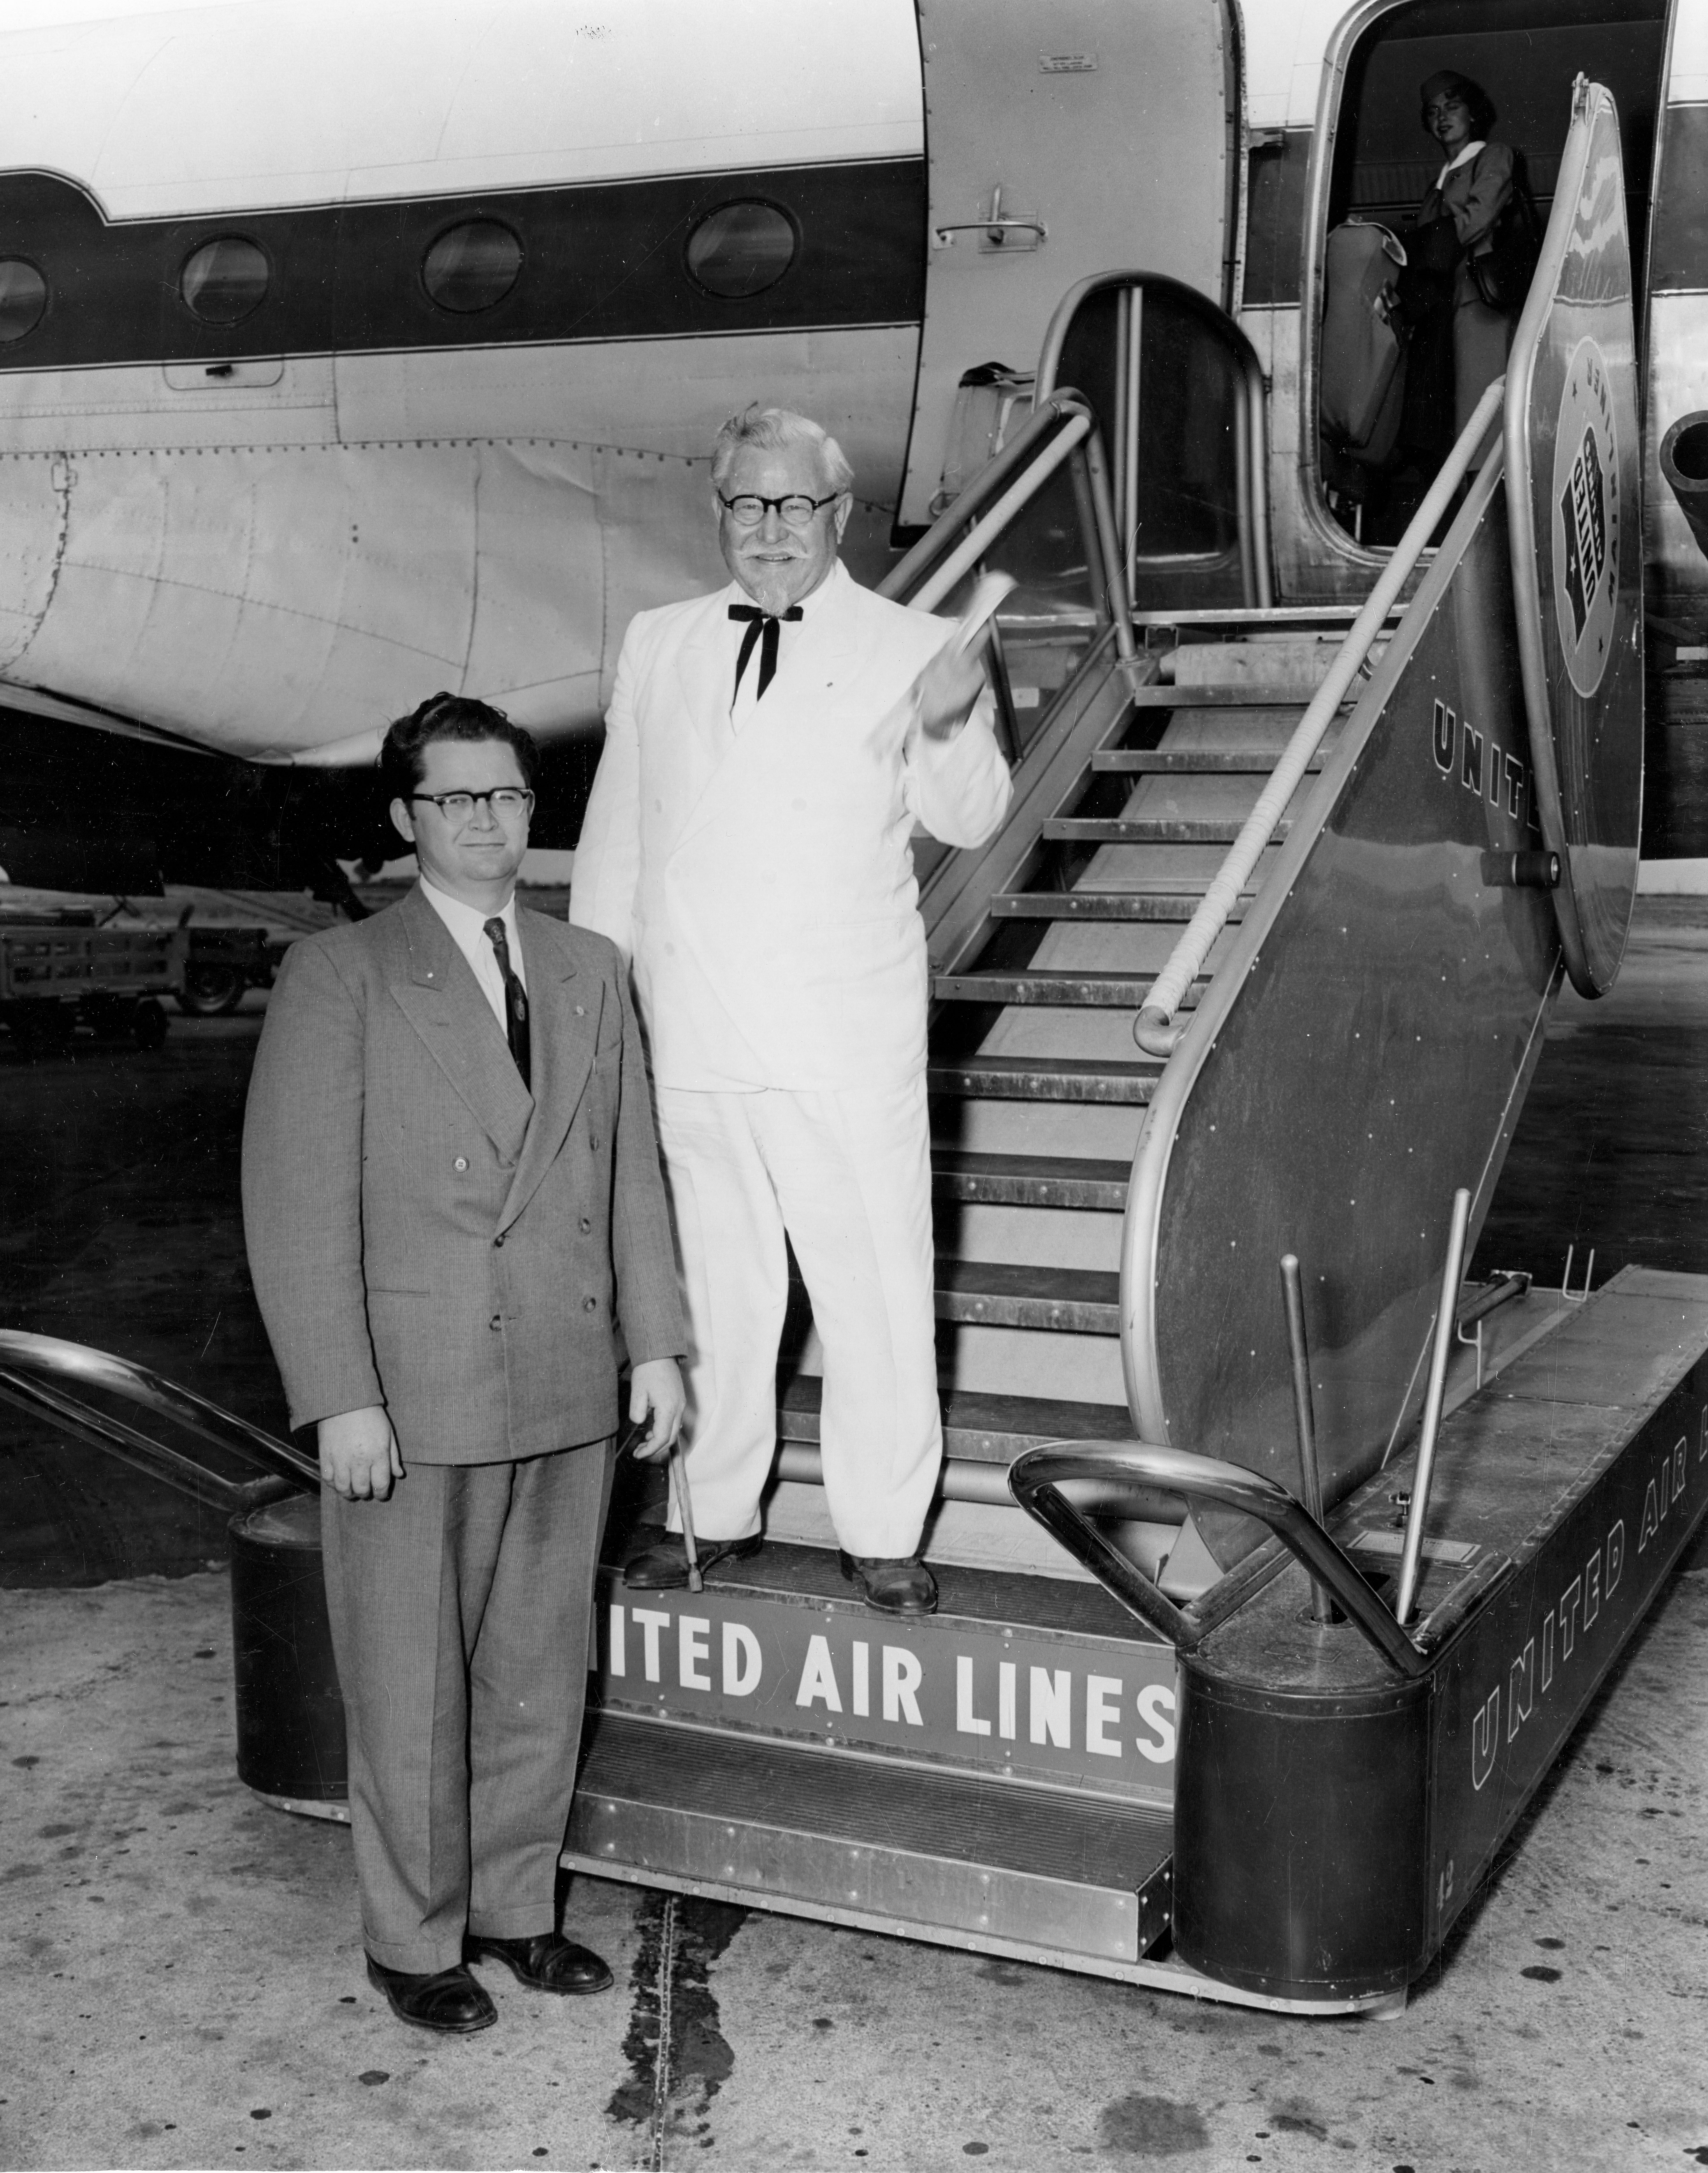 Pete Harman and Colonel Sanders at #SLC Airport, June 4, 1954. Pete ...